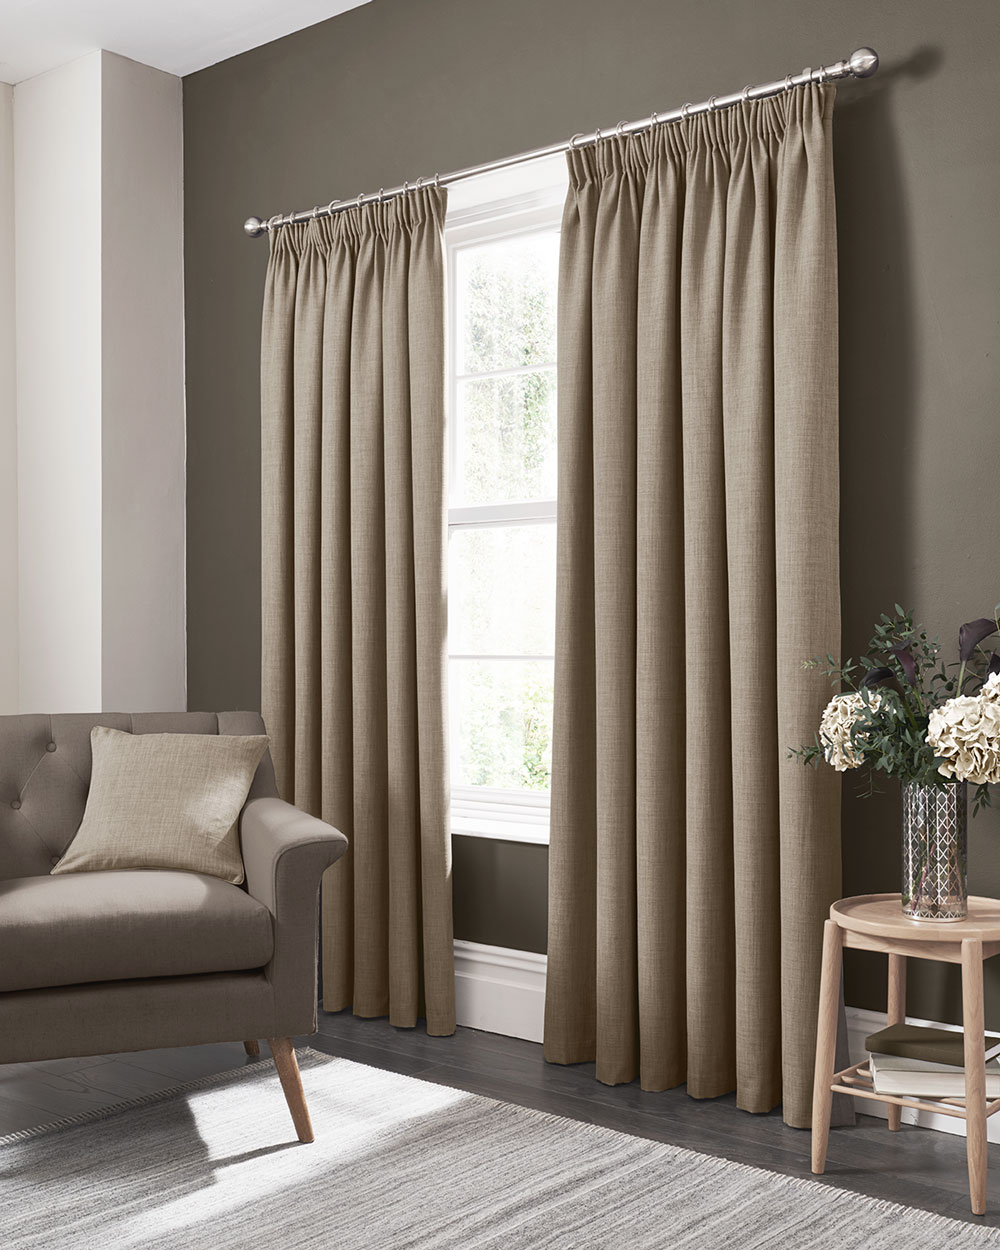 Studio G Elba Pencil Pleat Curtains  Linen Ready Made Curtains - Product code: M1105/03/66X7